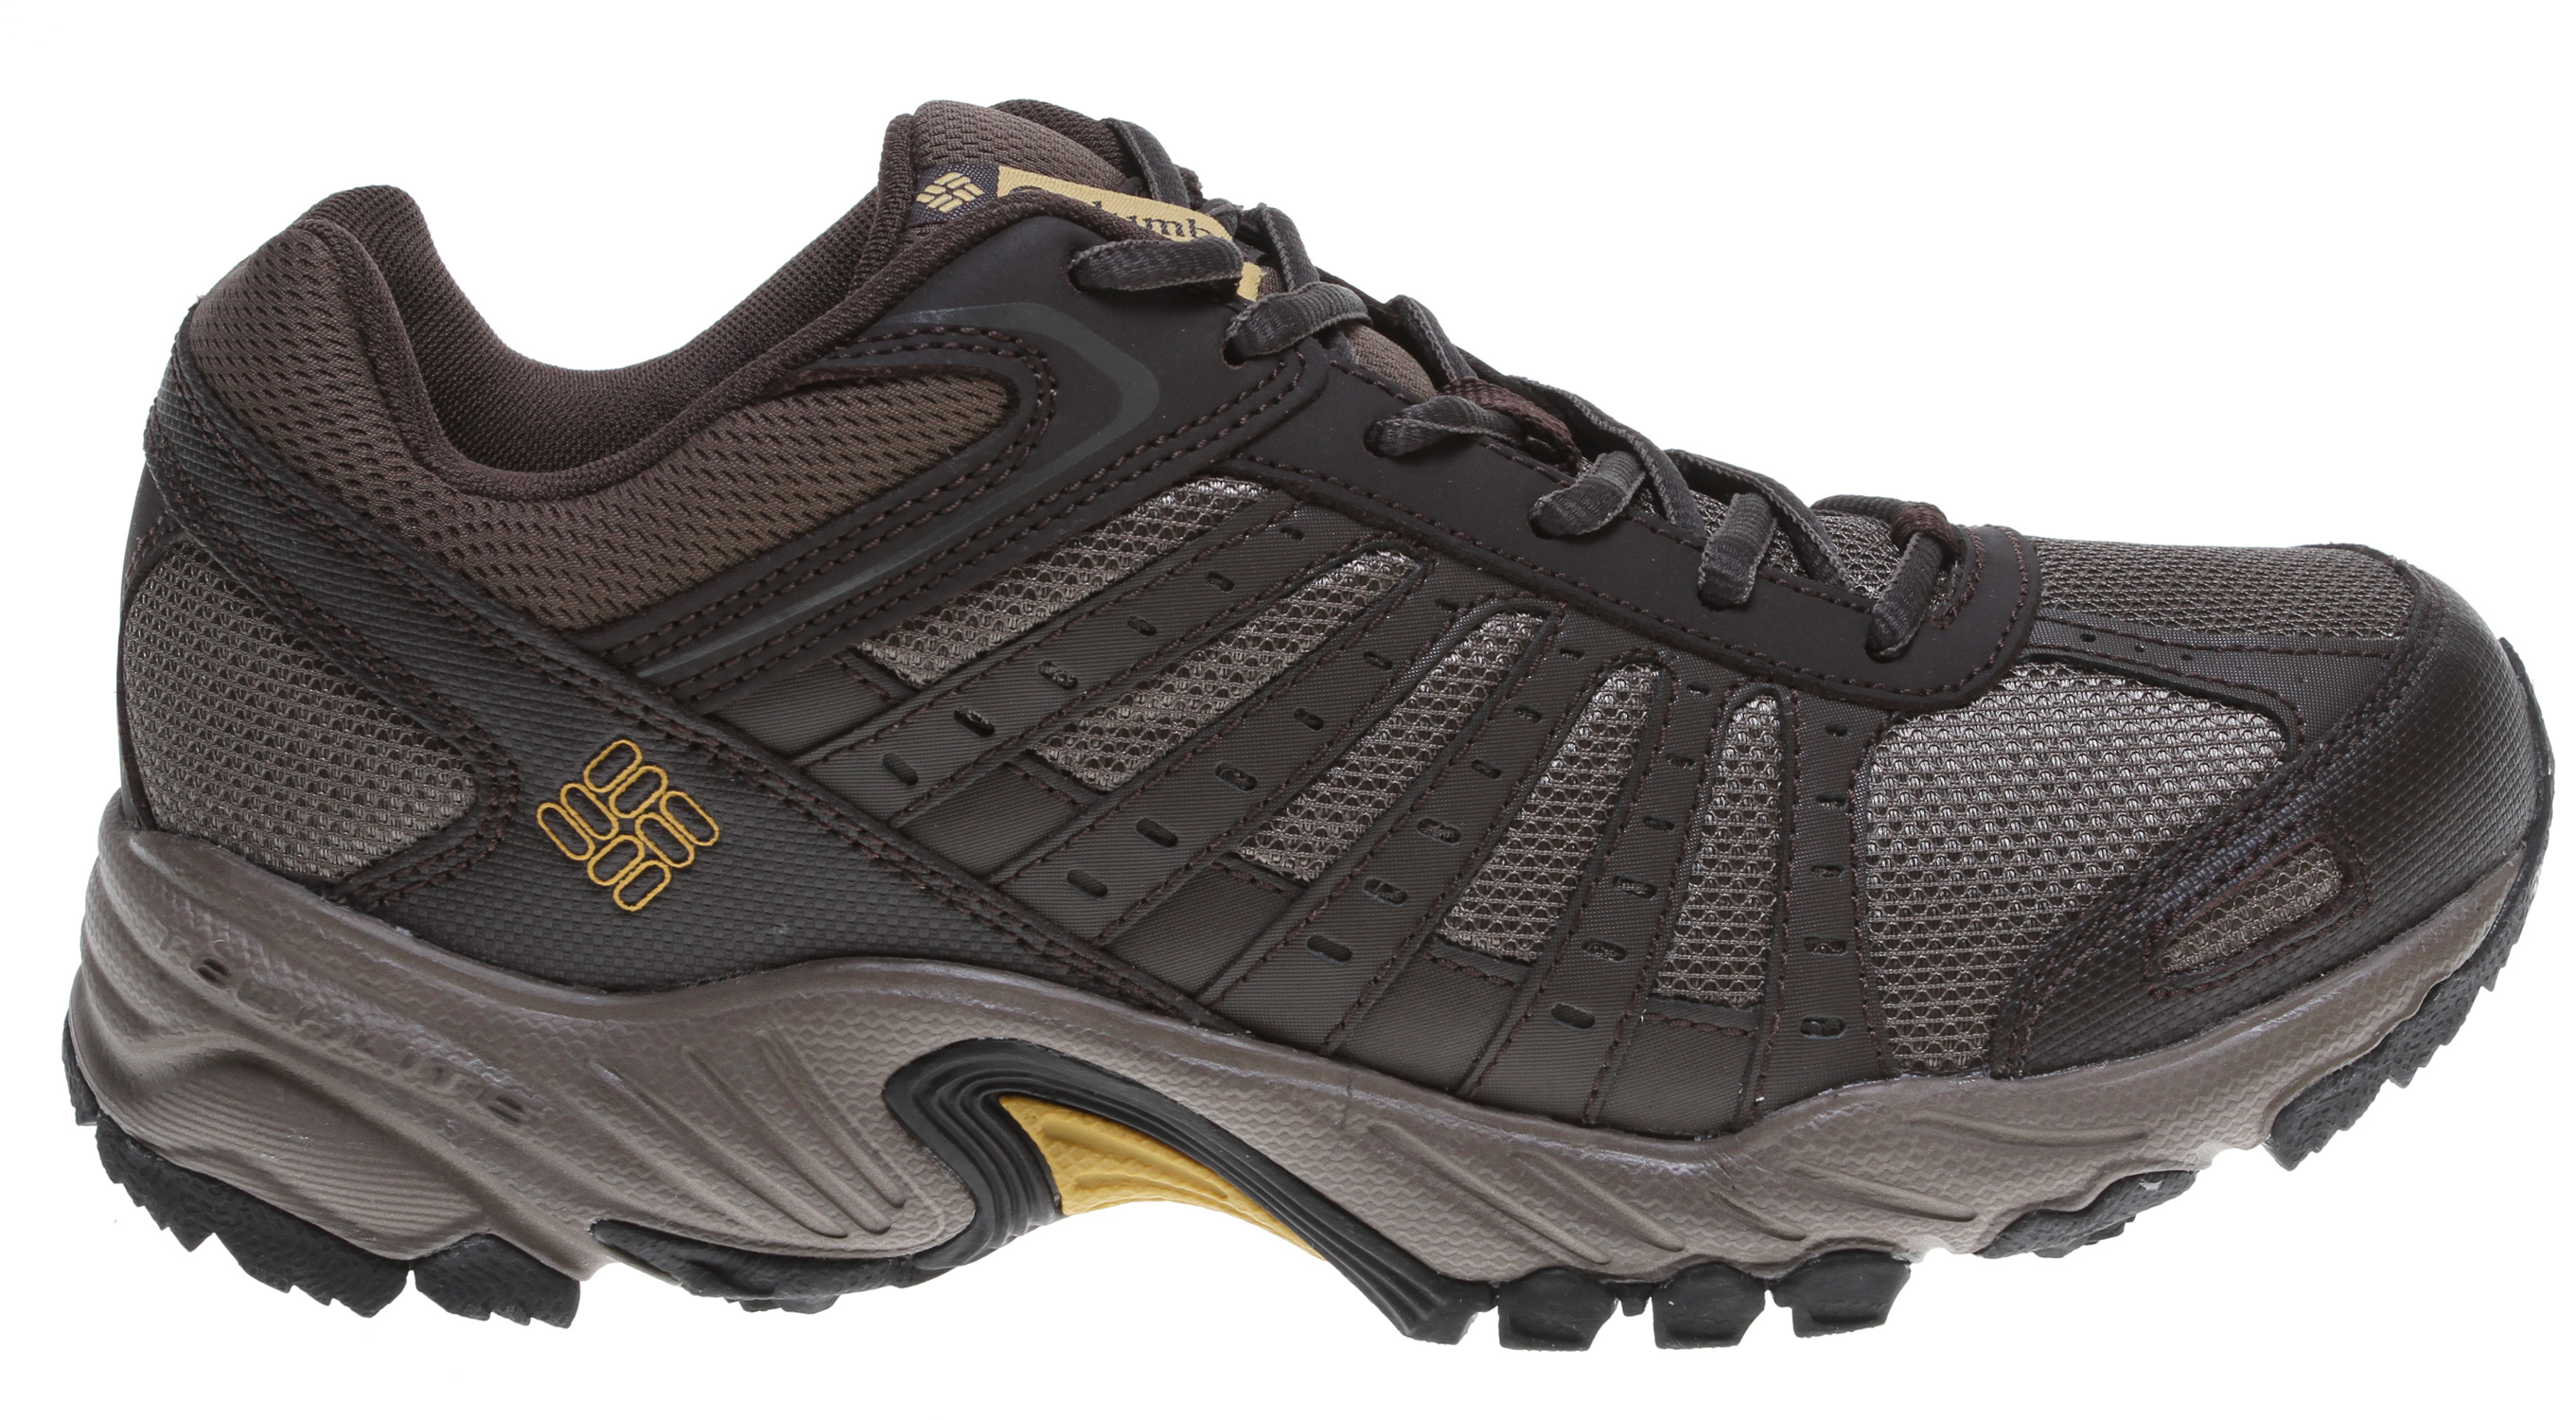 Fitness A running inspired trail shoe designed to be lightweight and supportive.Key Features of the Columbia Whitney Ridge Hiking Shoes: Breathable mesh textile PU Coated Midsole: Techlite lightweight cushioned midsole Outsole: Omni grip non marking traction rubber - $51.95